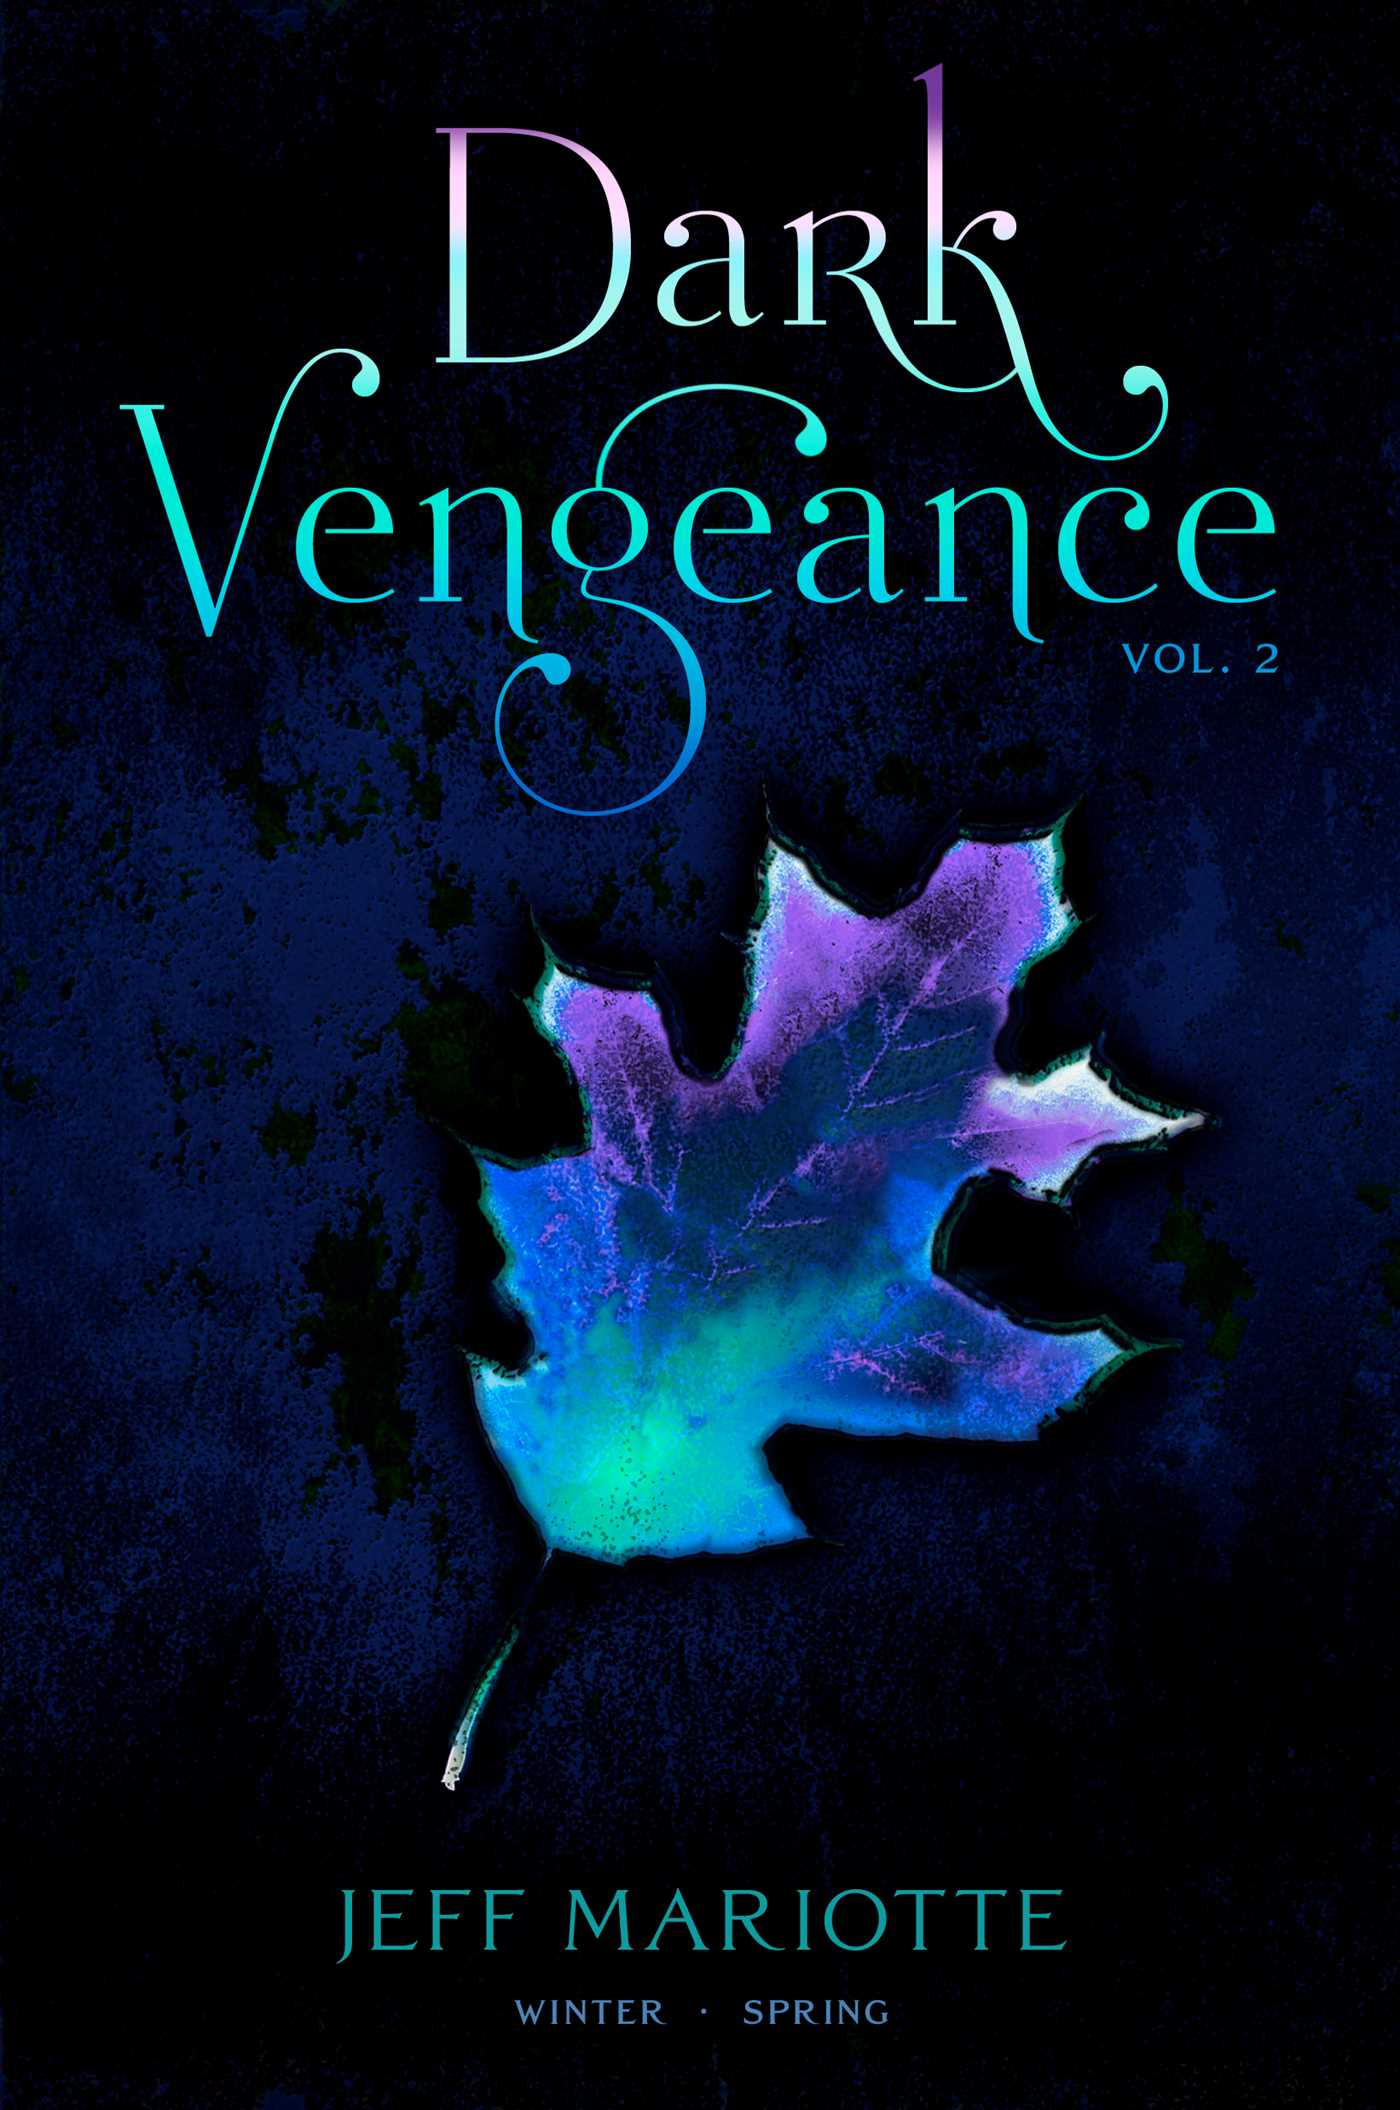 Dark-vengeance-vol-2-9781442436268_hr